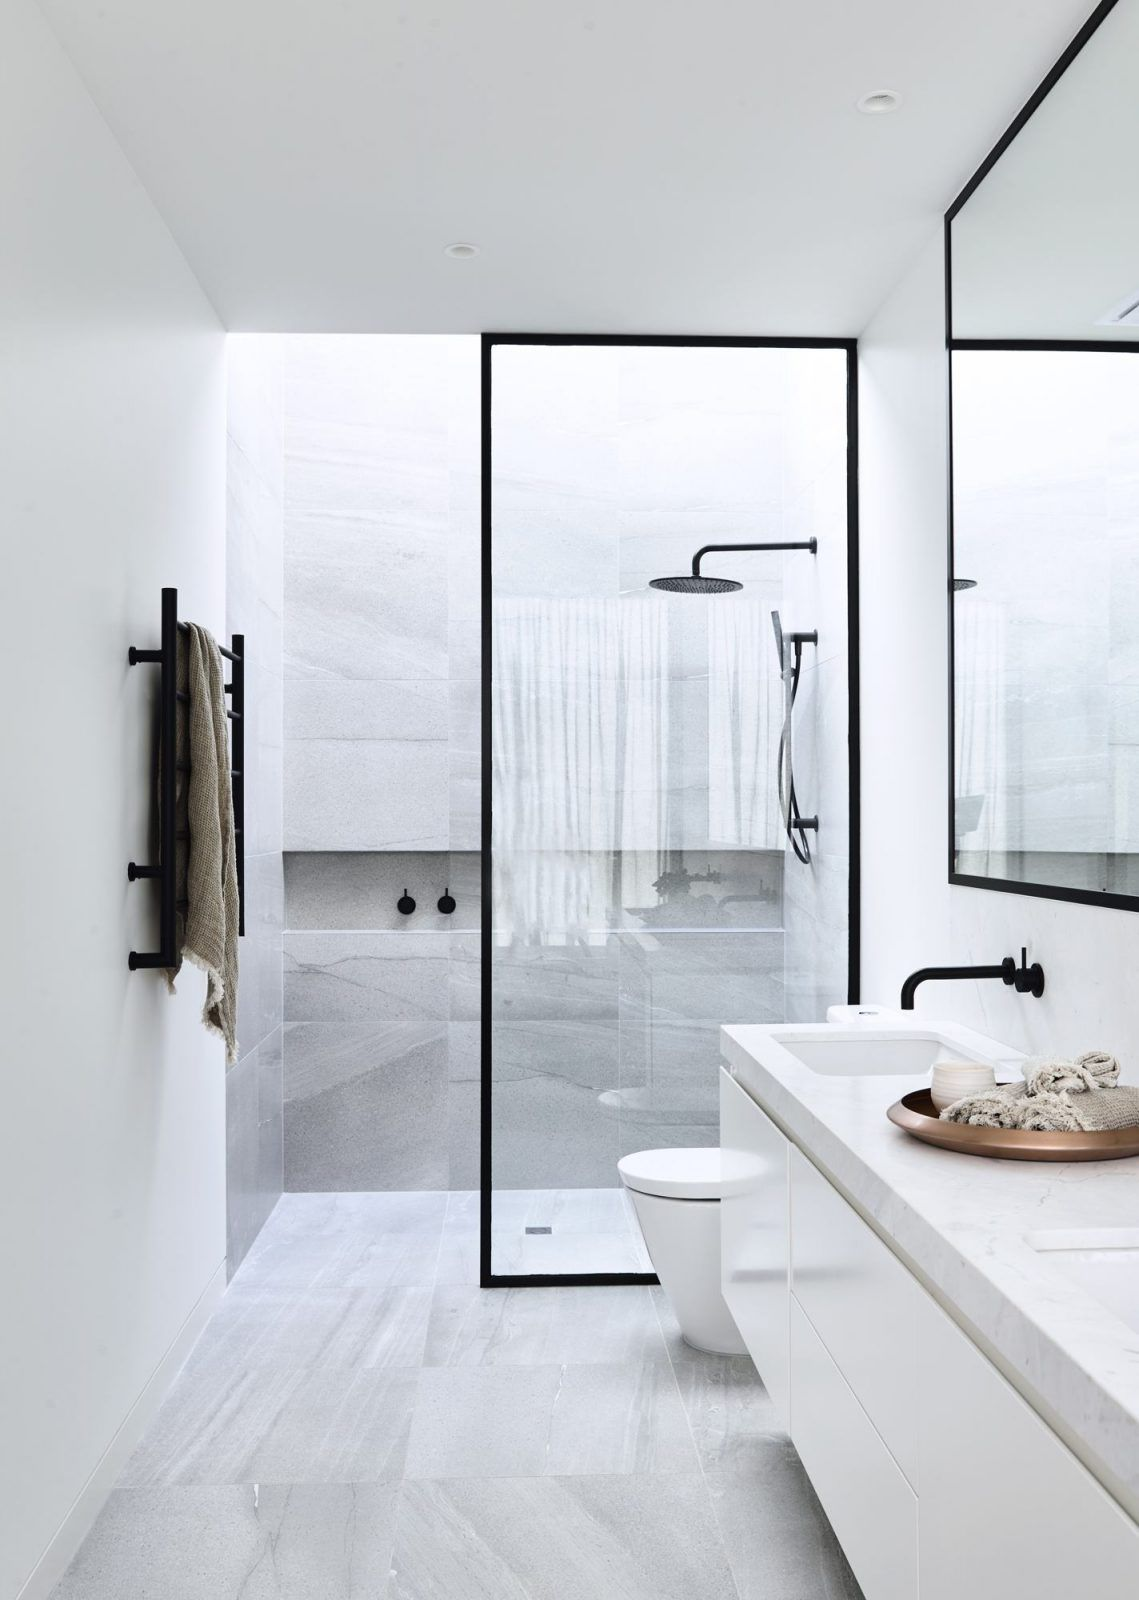 12 Amazing Black and White Bathrooms For The Minimalist In You ...